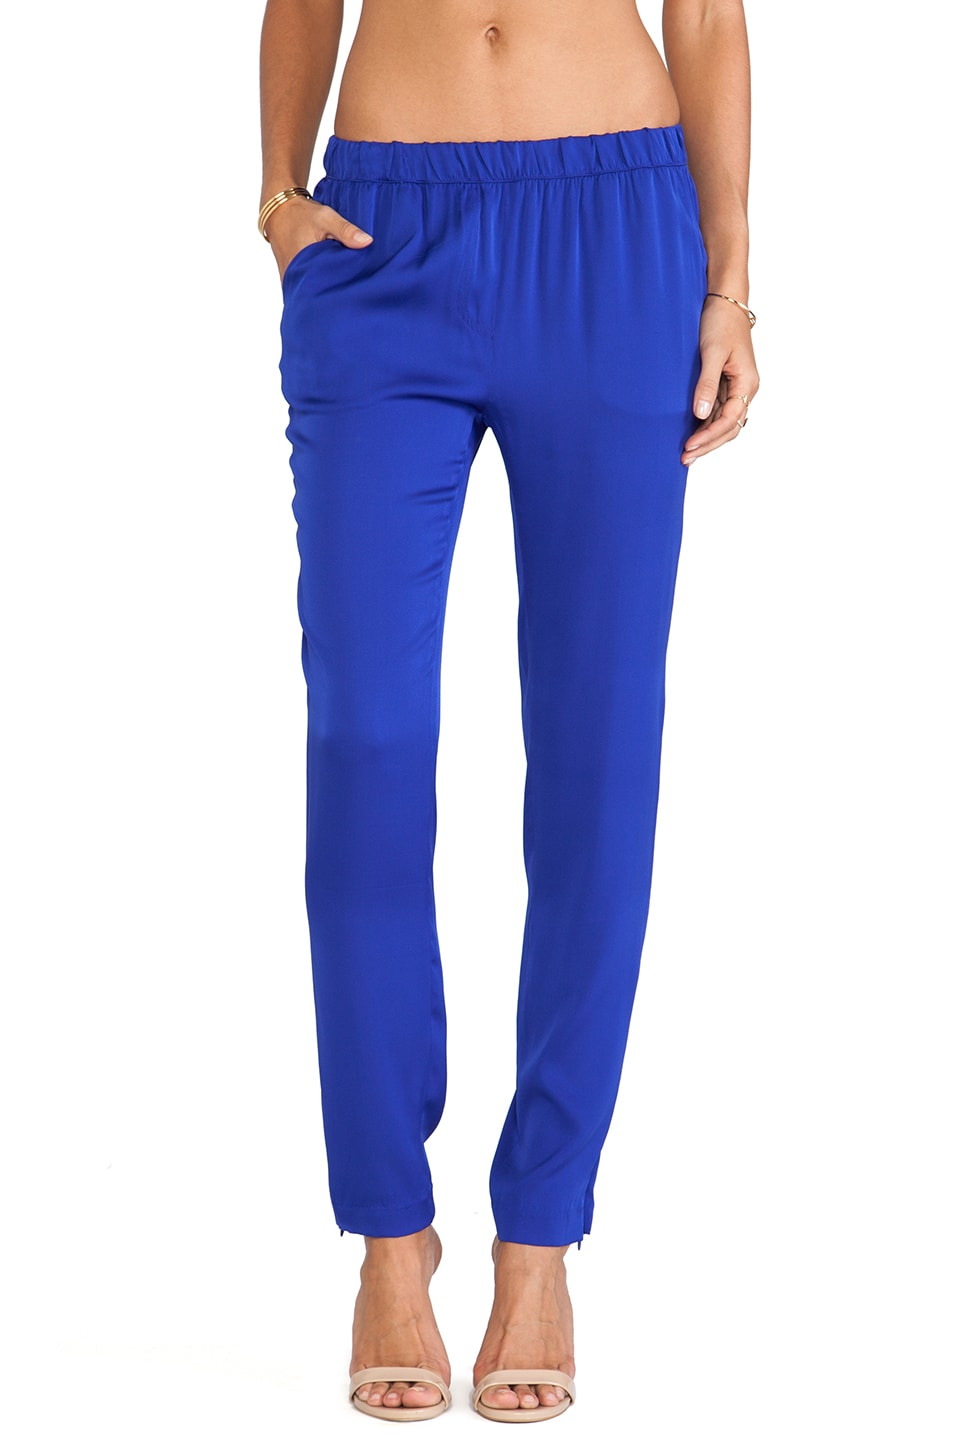 Joe's Jeans Vivian Silk Pants in Royal Blue